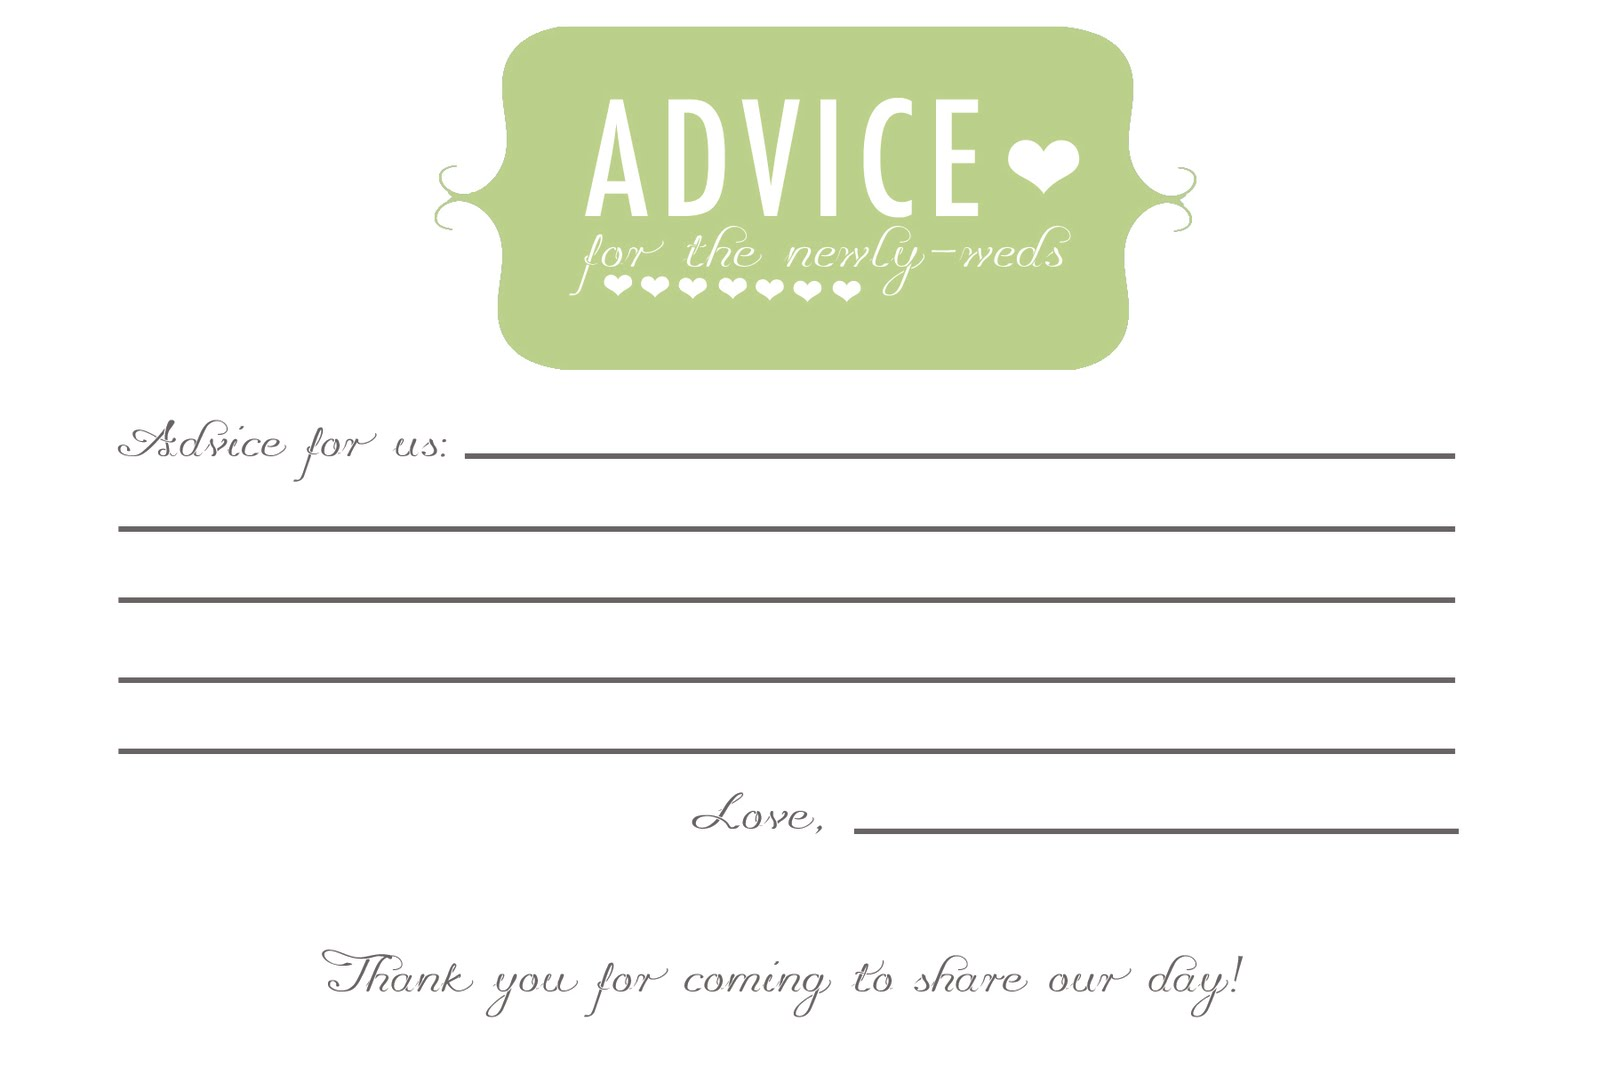 bridal shower advice cards template - free printable words of wisdom game for baby shower hot